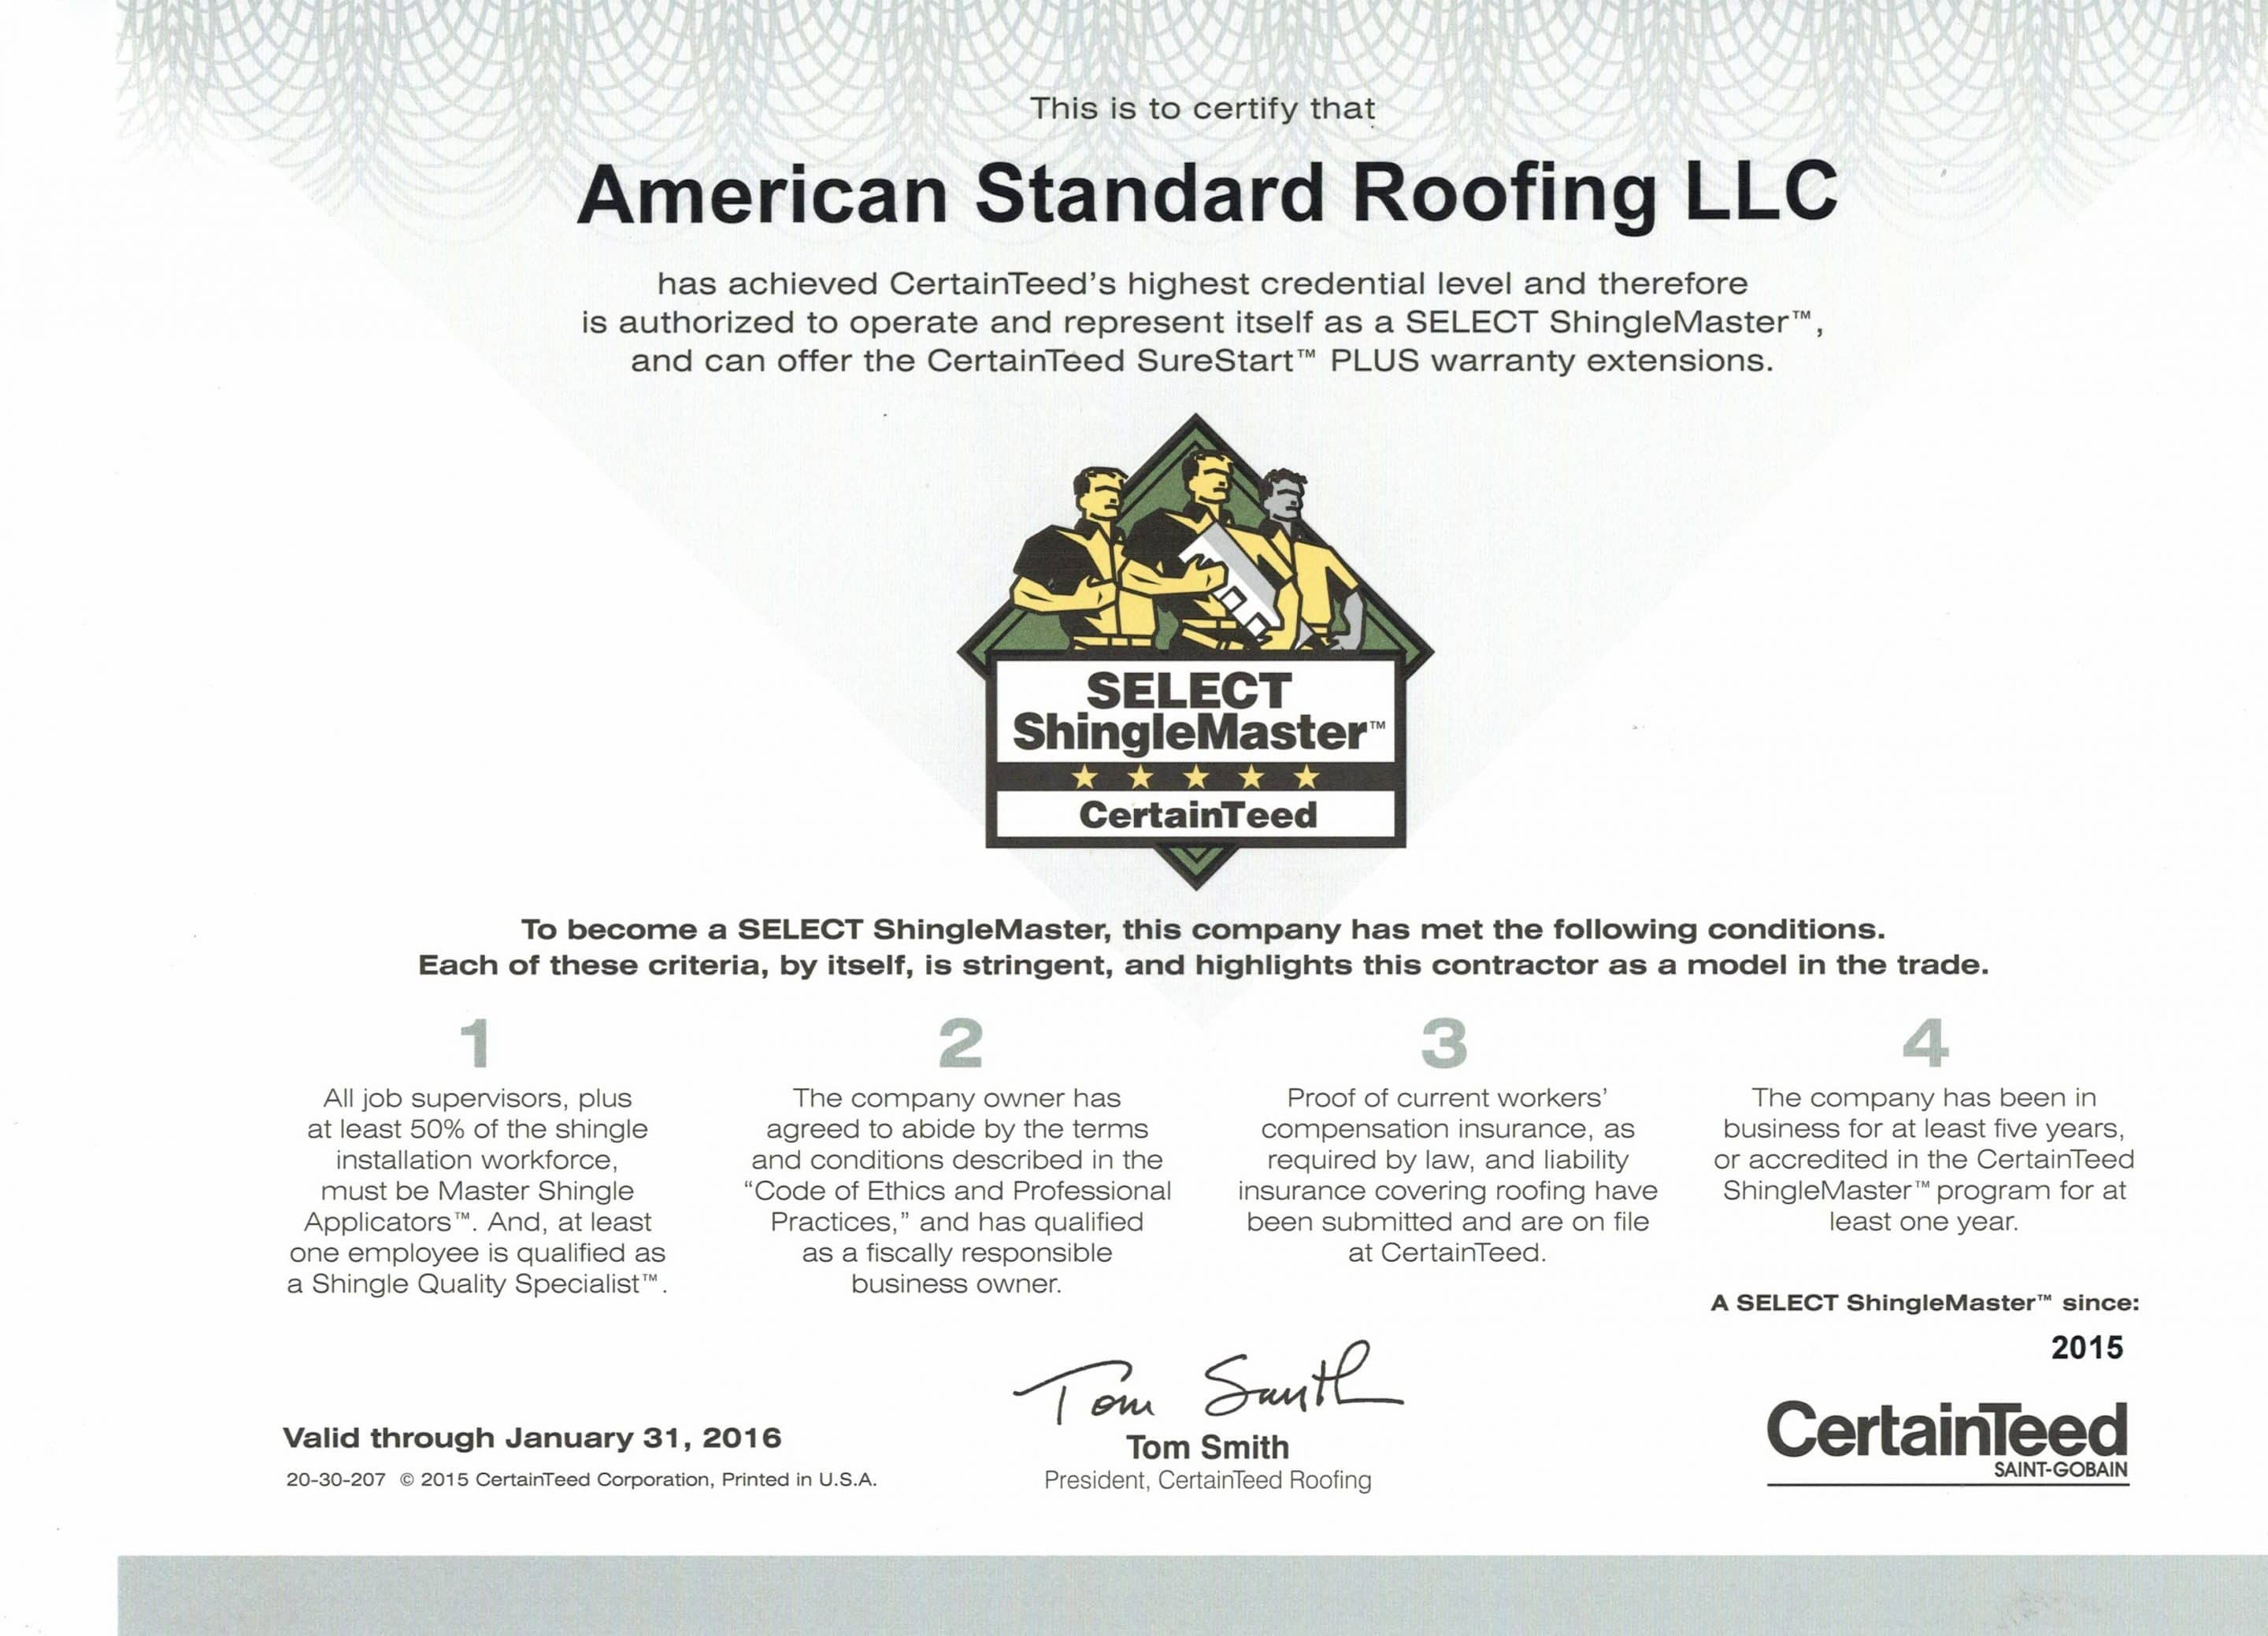 Certainteed certifications american standard roofing shingle master michigan roofing xflitez Images